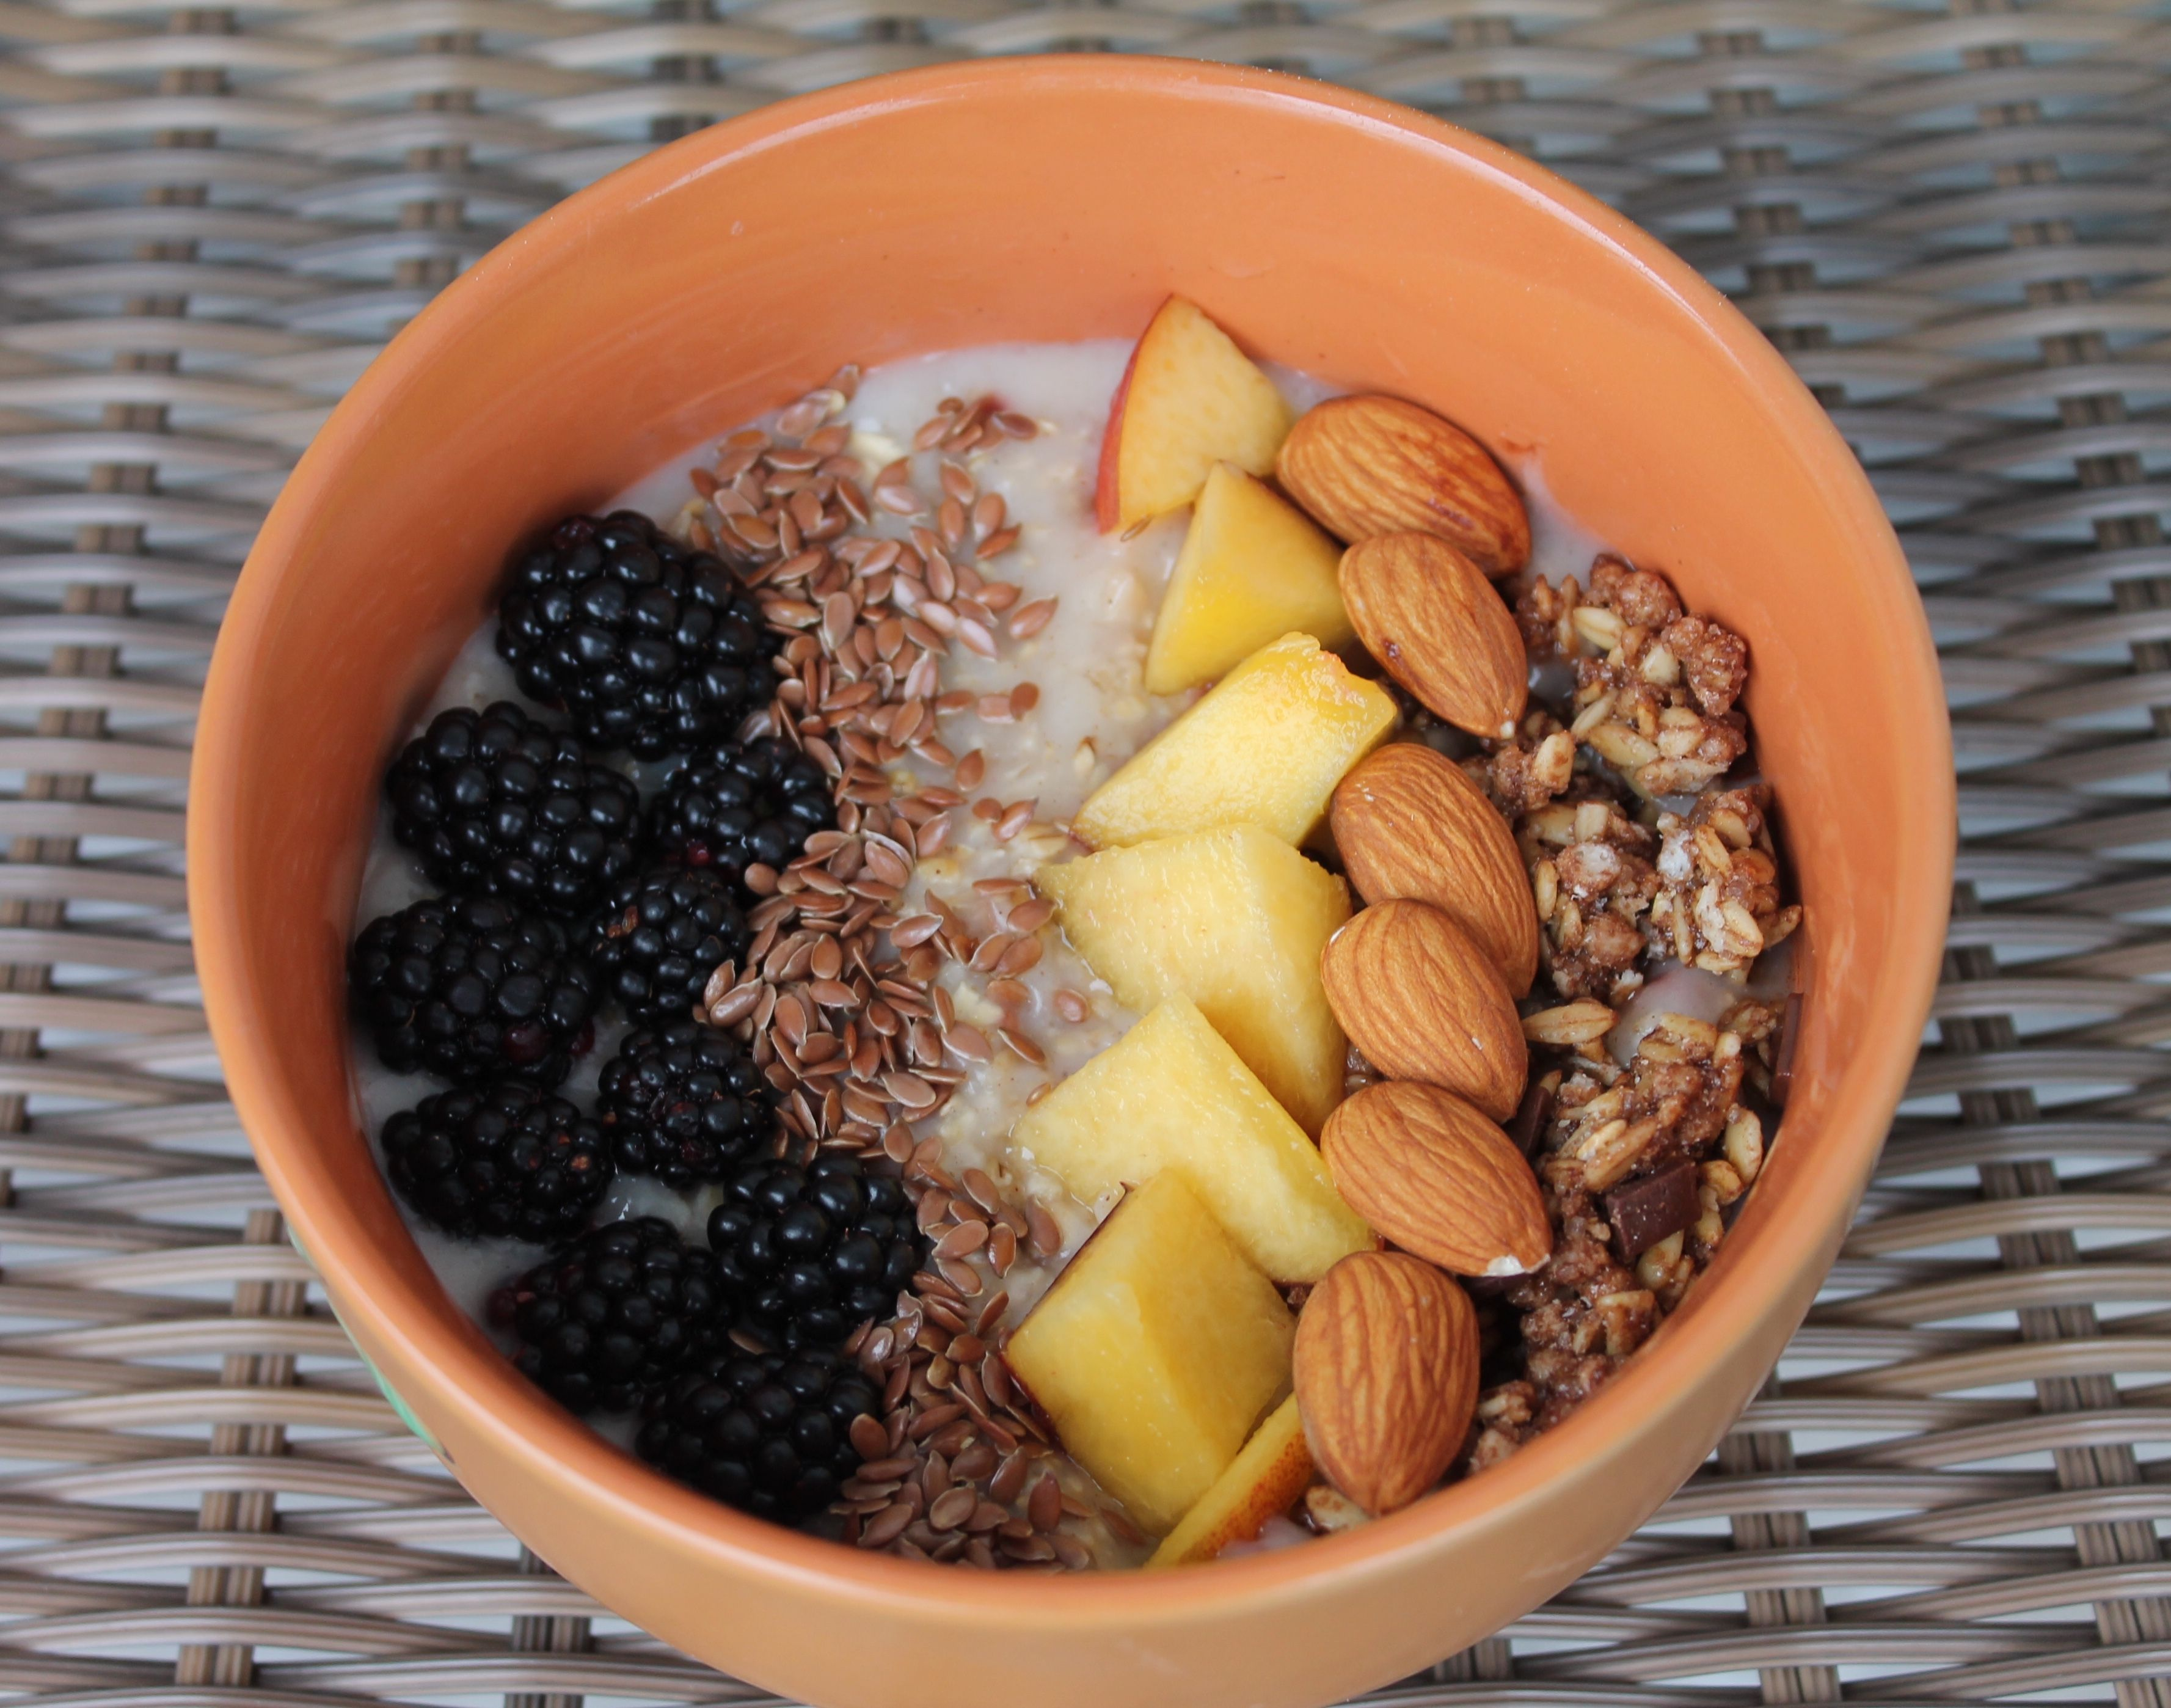 Vanilla oatmeal with blackberries, flax seeds, nectarines, almonds and chocolate granola